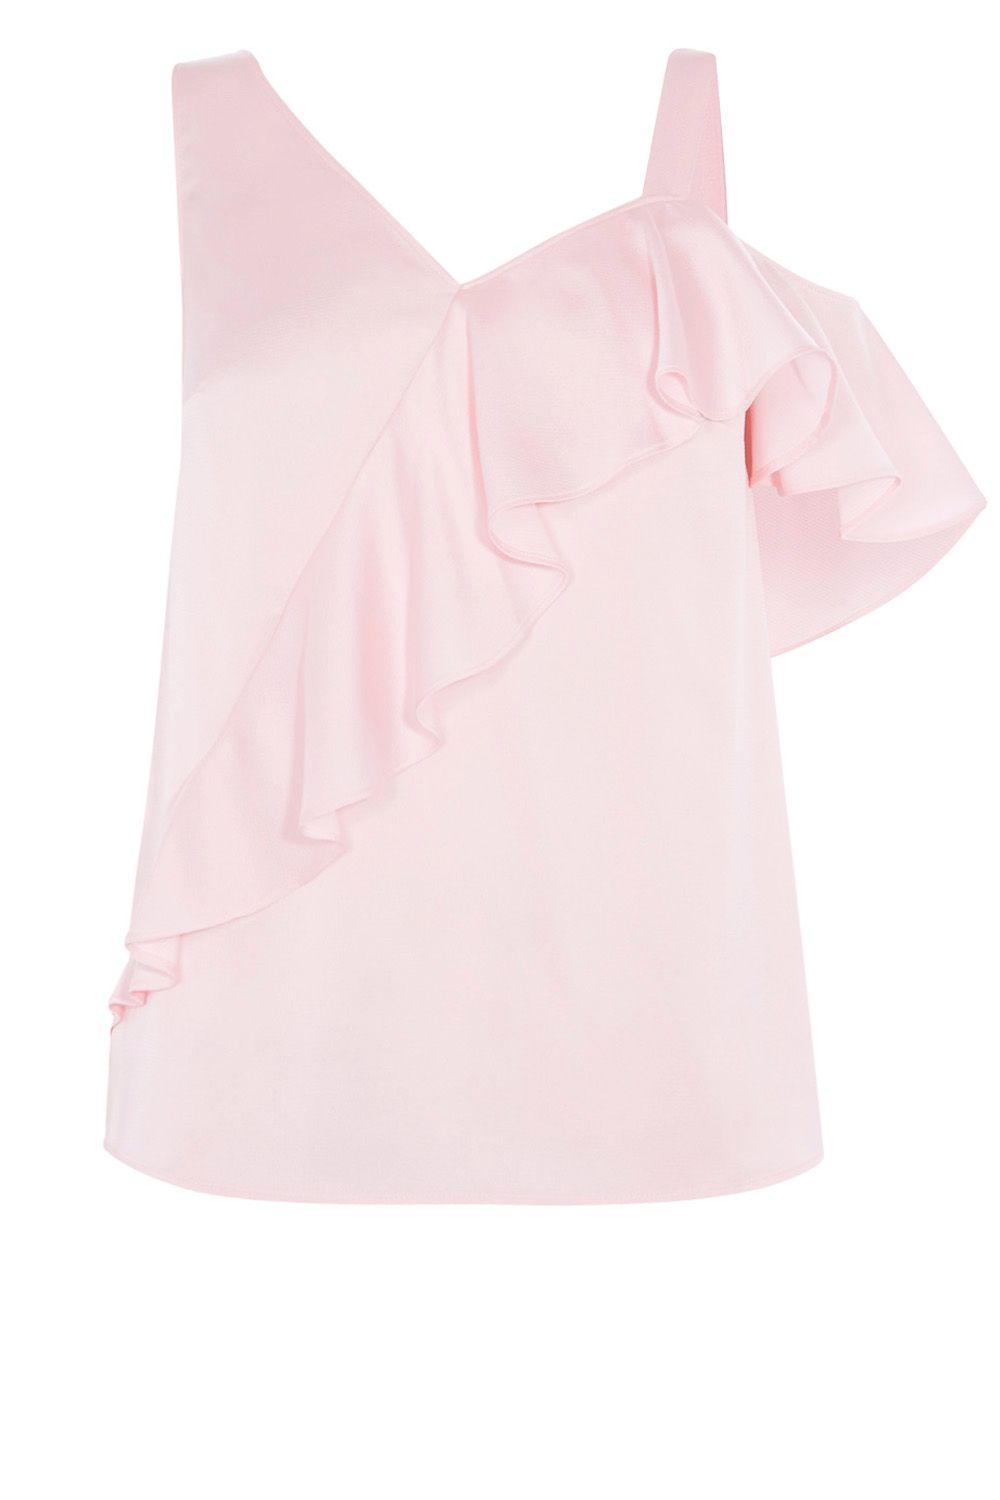 Coast Emeli Frill Top, Rose